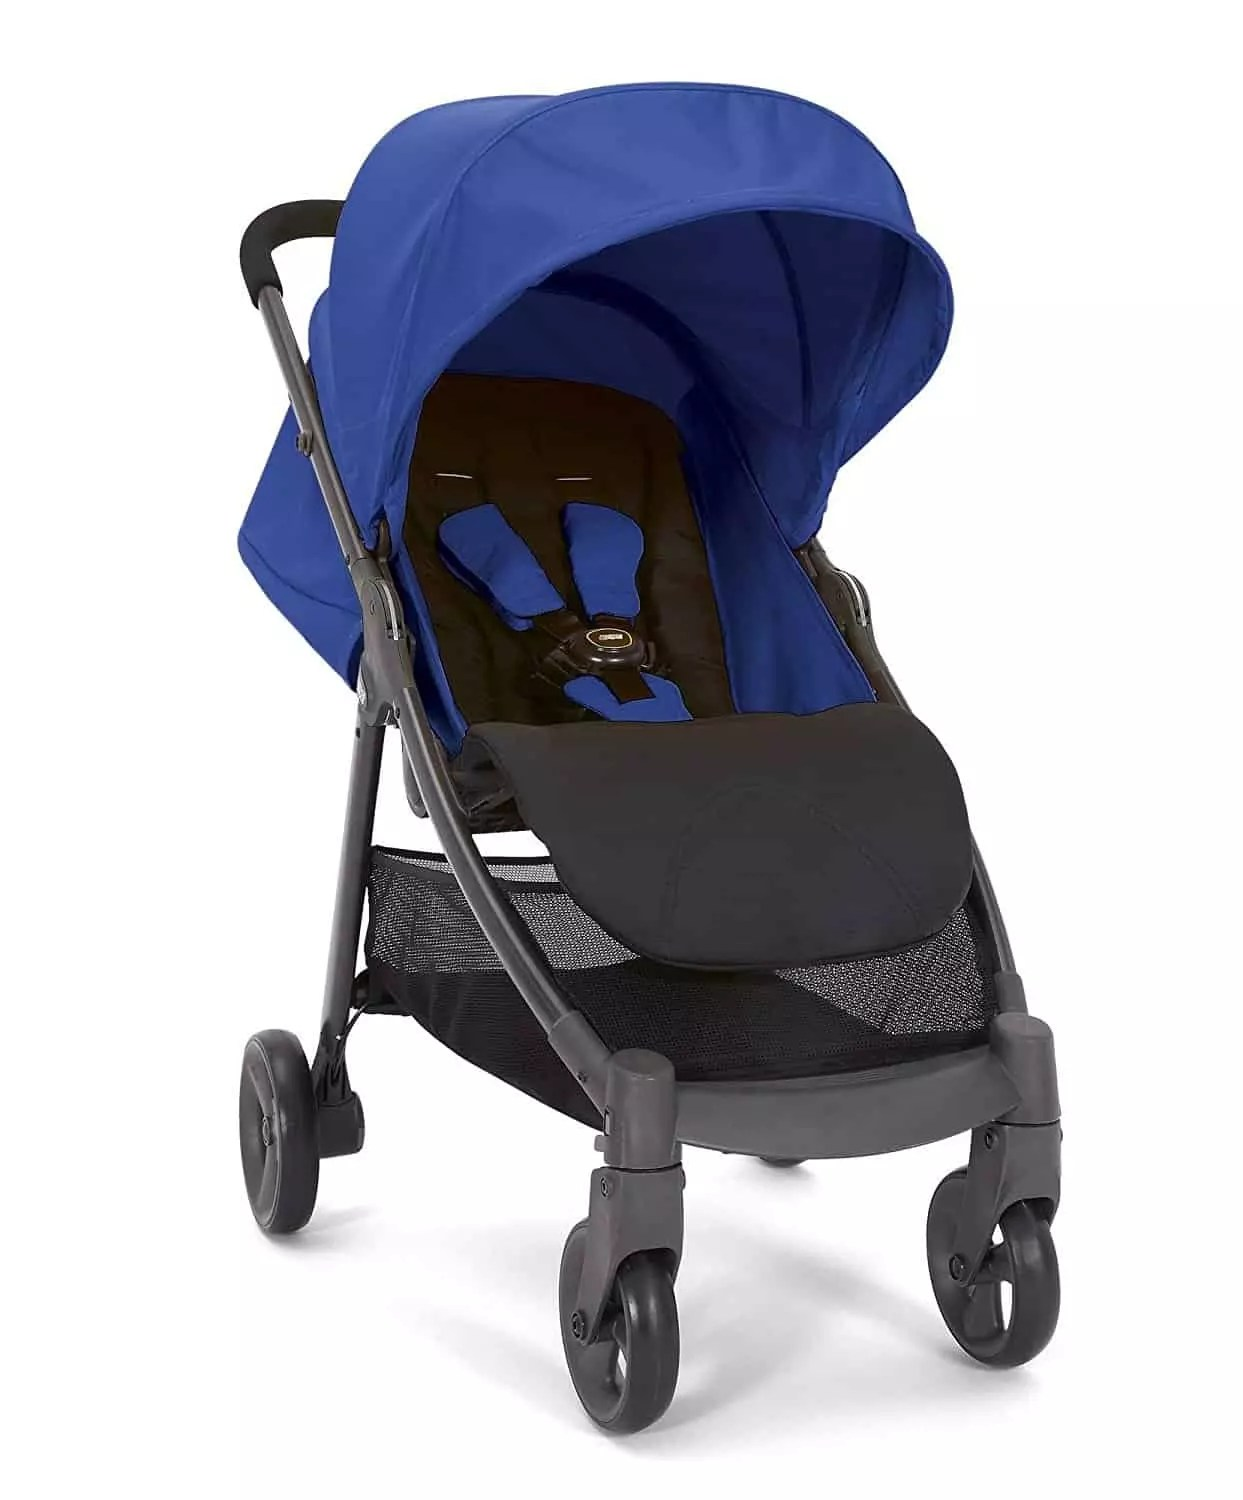 Mima Stroller Houston Stroller Brand Review Mamas And Papas Baby Bargains